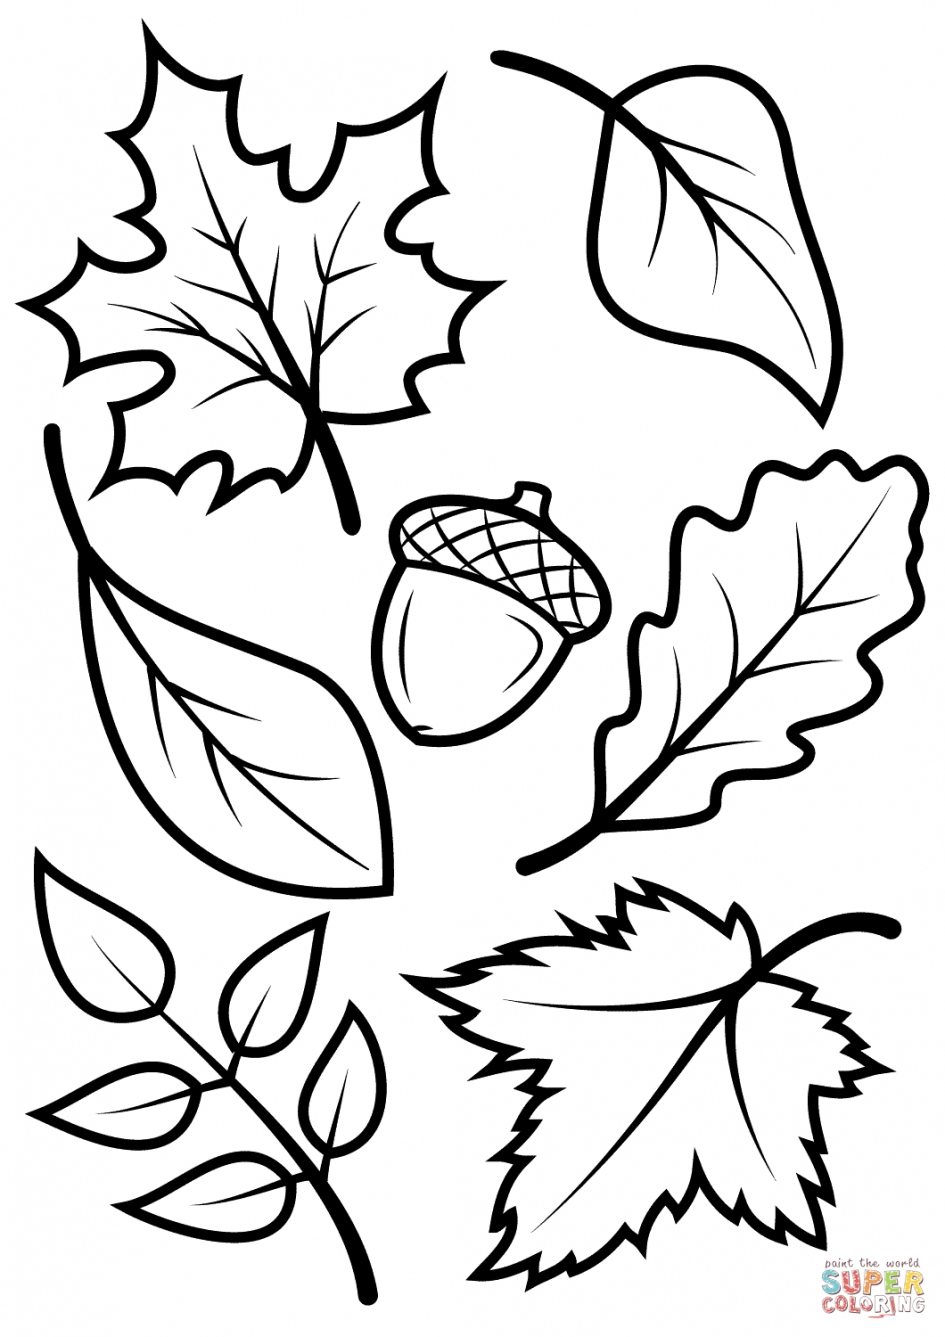 free printable fall coloring pages - fall leaves coloring pages